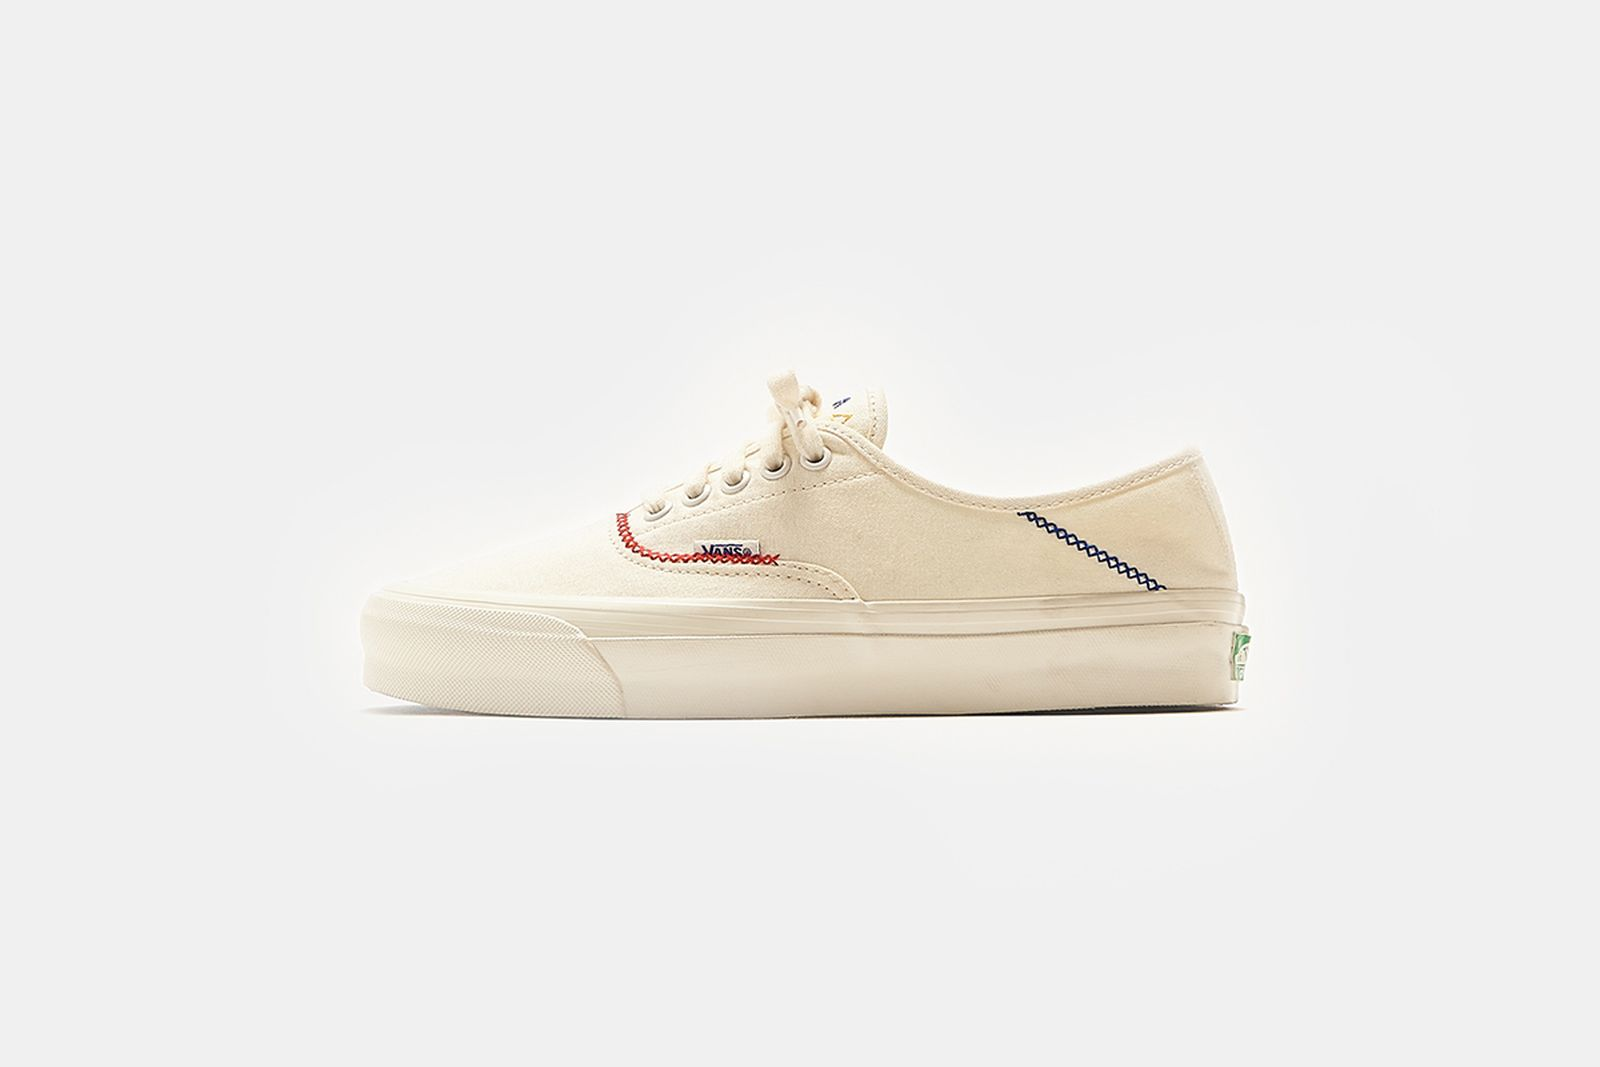 madhappy-vault-by-vans-og-style-43-lx-release-date-price-02